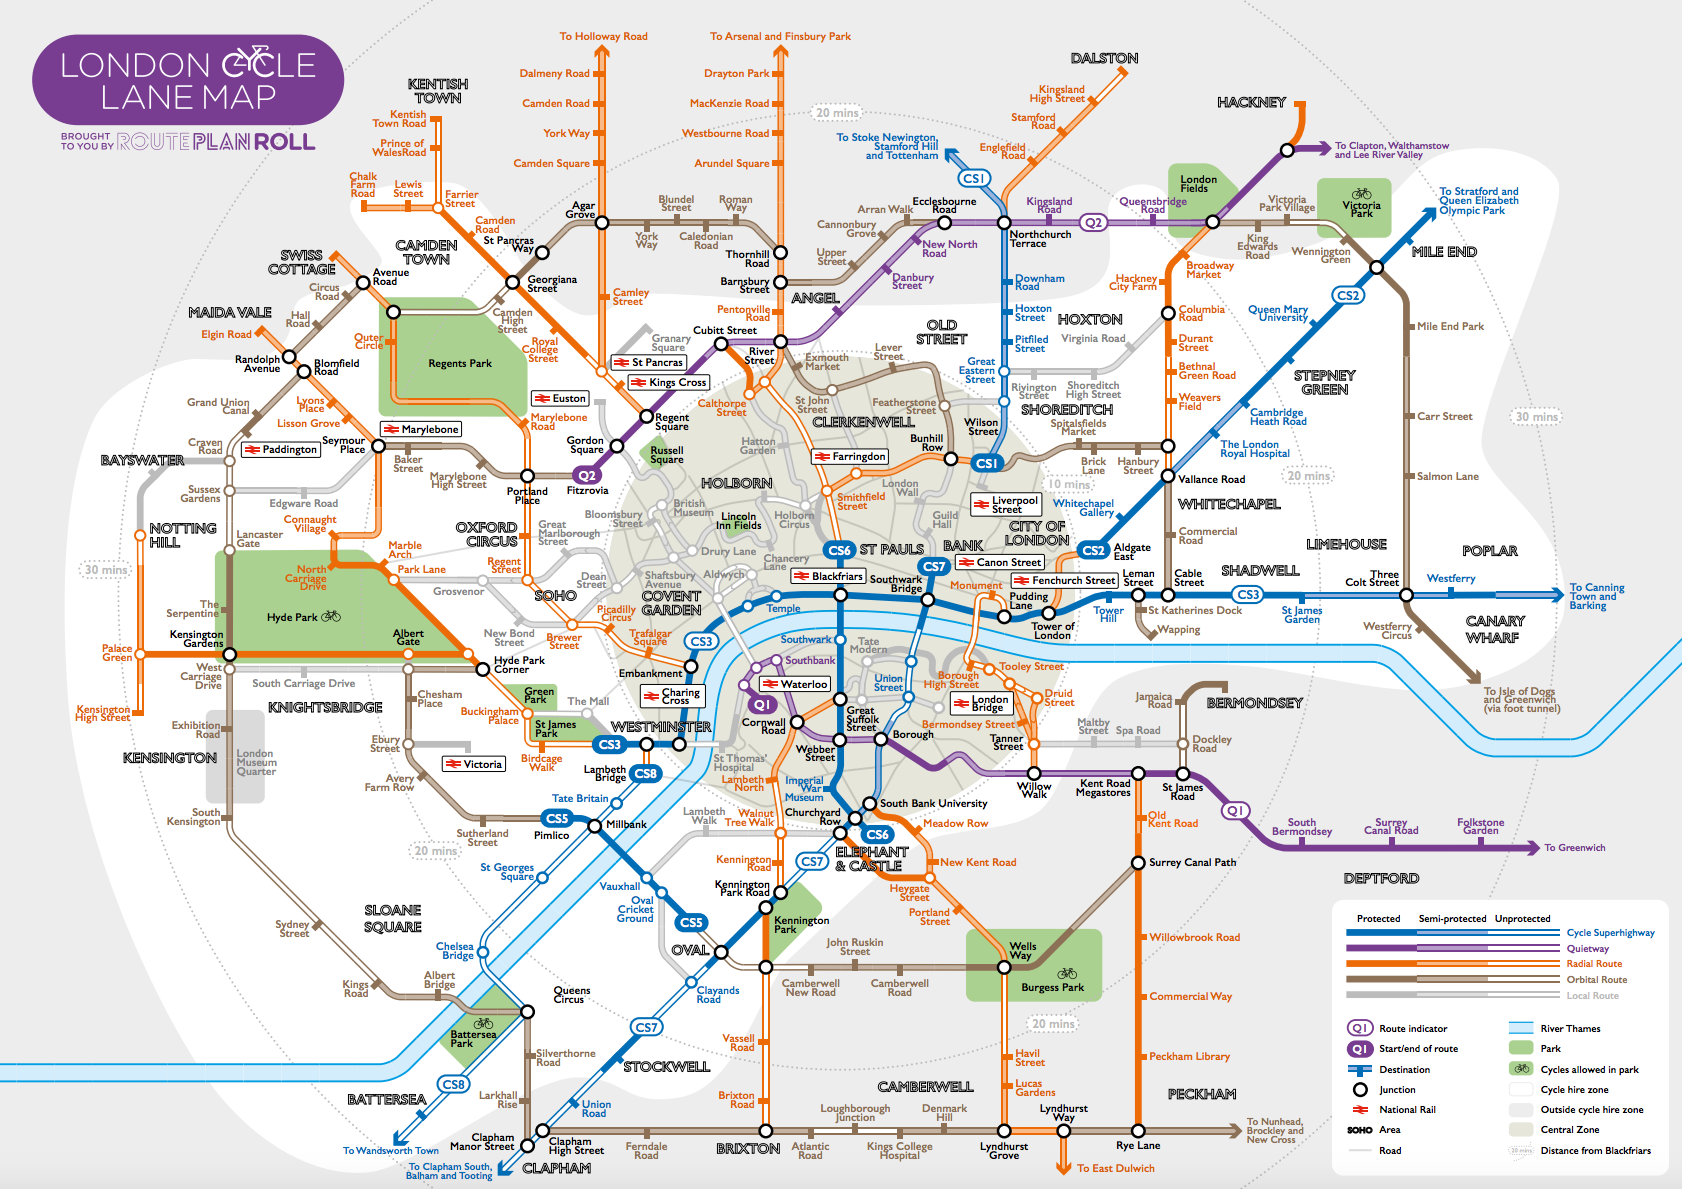 Cycle Superhighway Map Route Plan Roll Cycle Map | Mapping London Cycle Superhighway Map